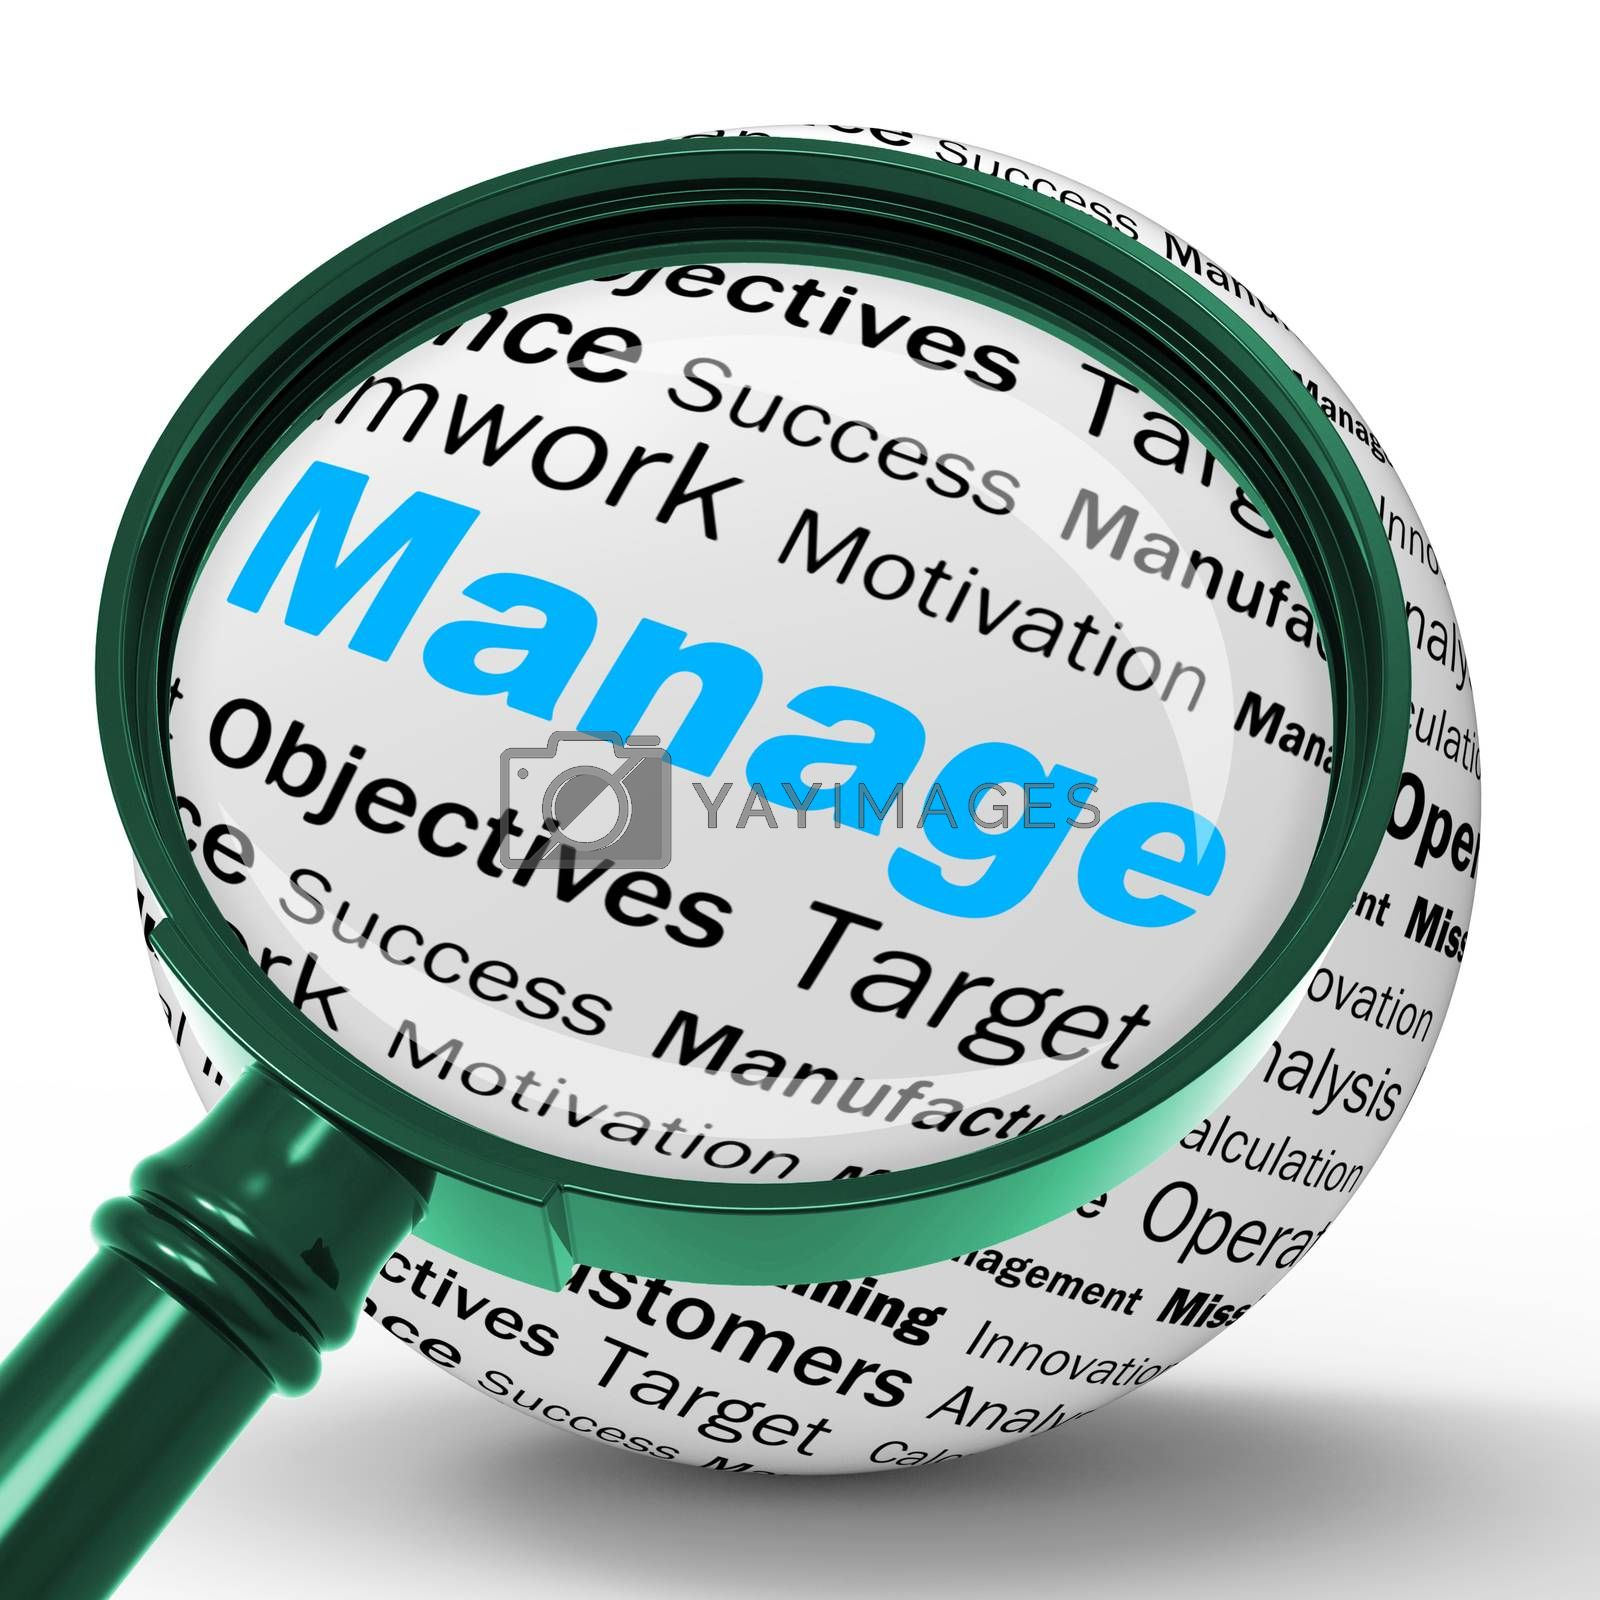 Manage Magnifier Definition Means Business Administration Or Dev by stuartmiles